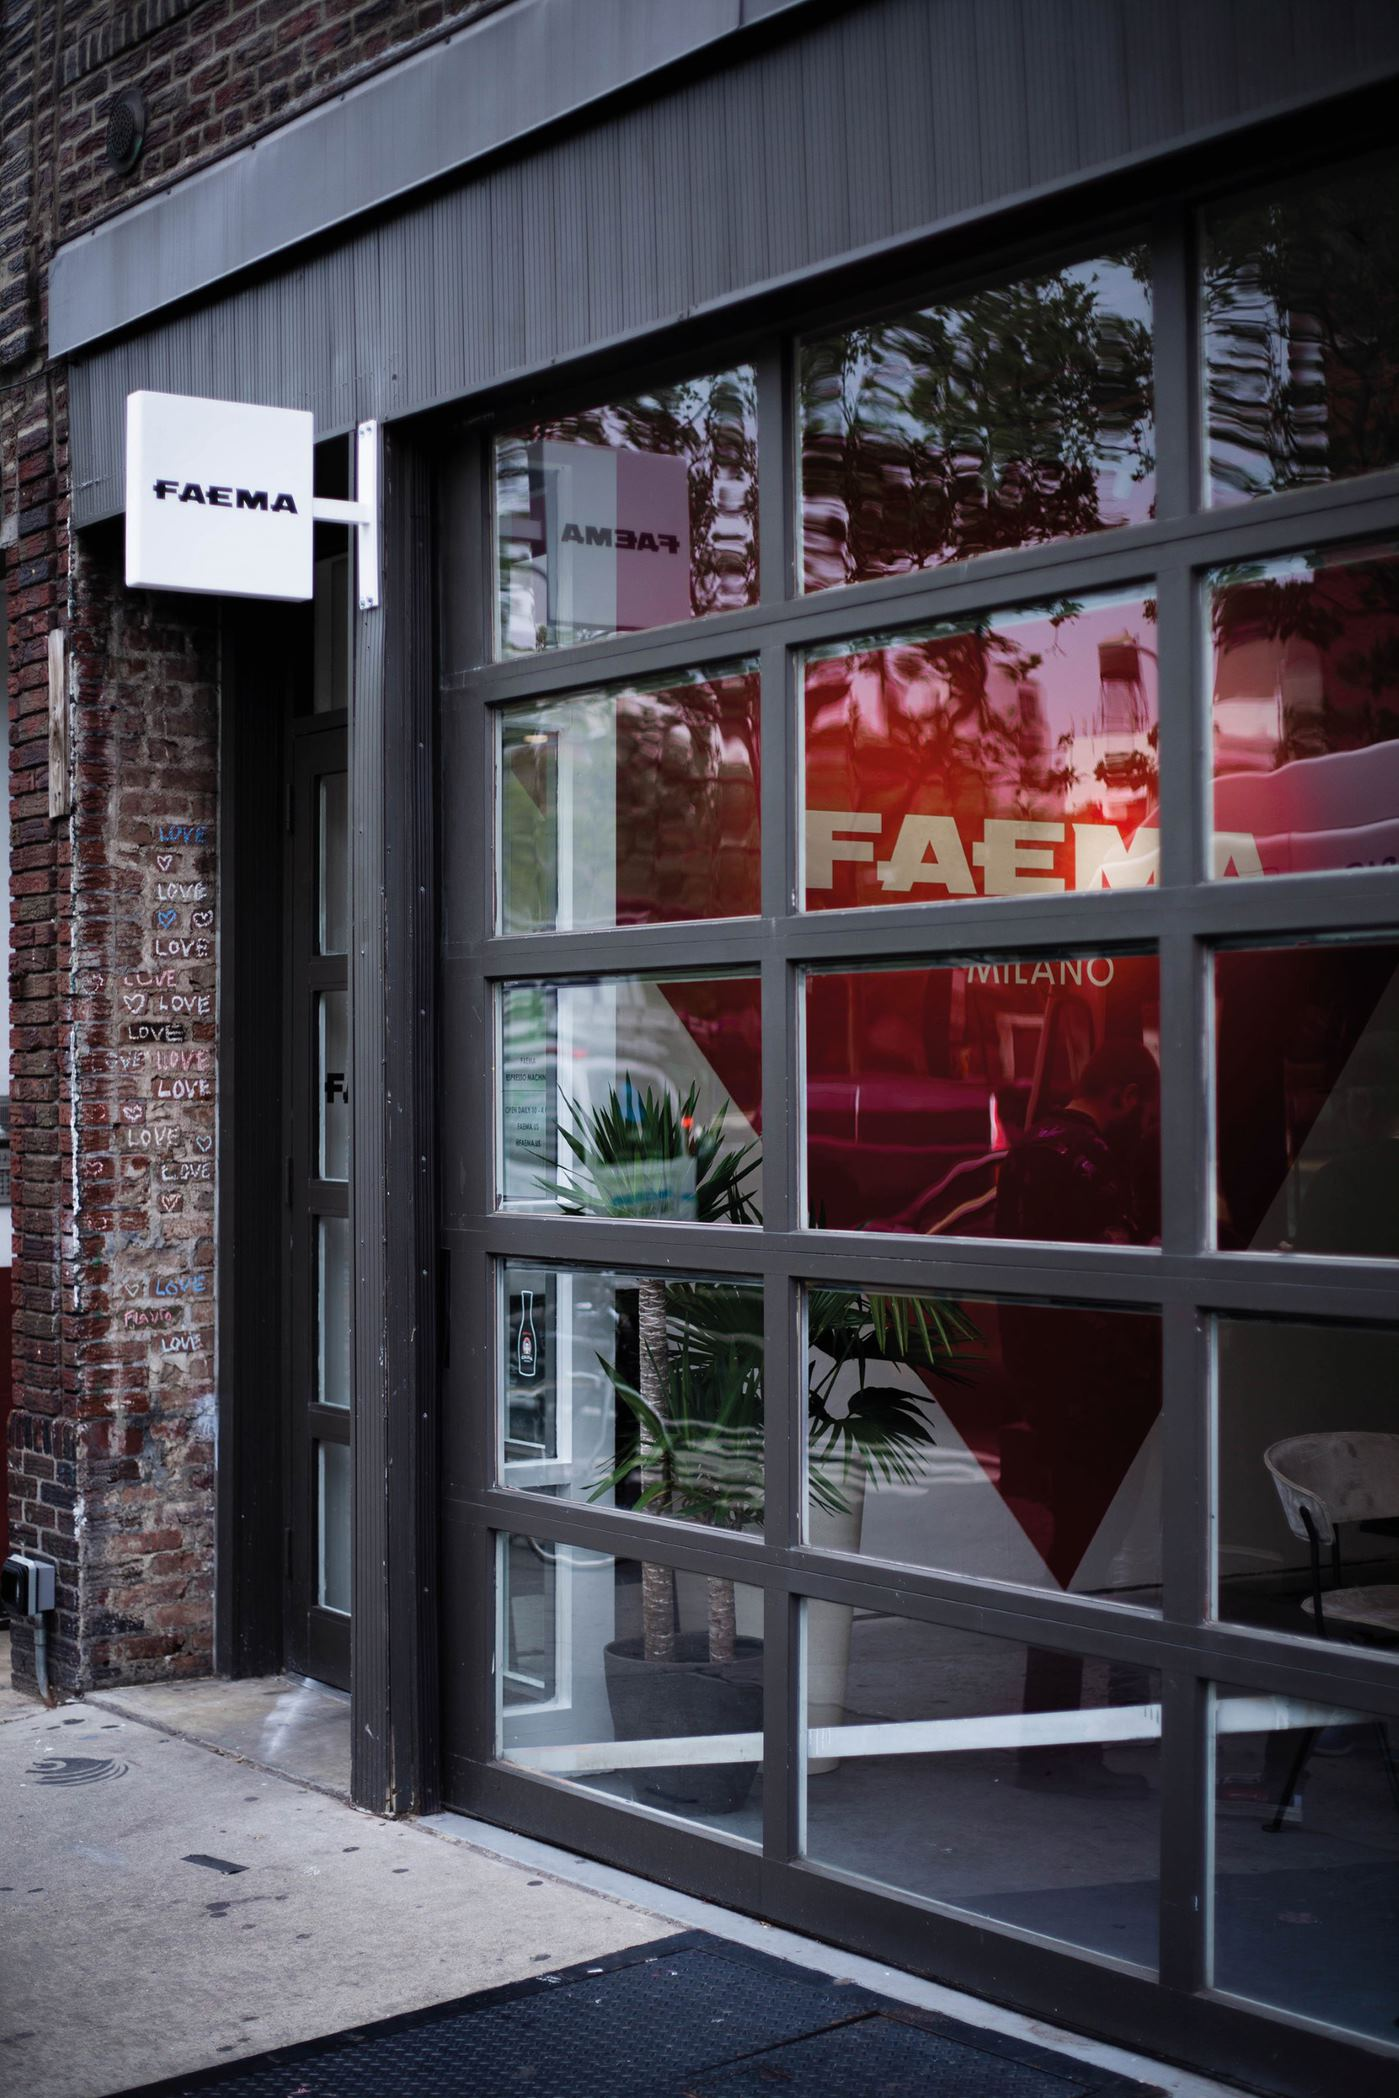 Faema art & caffeine a New York l'ingresso